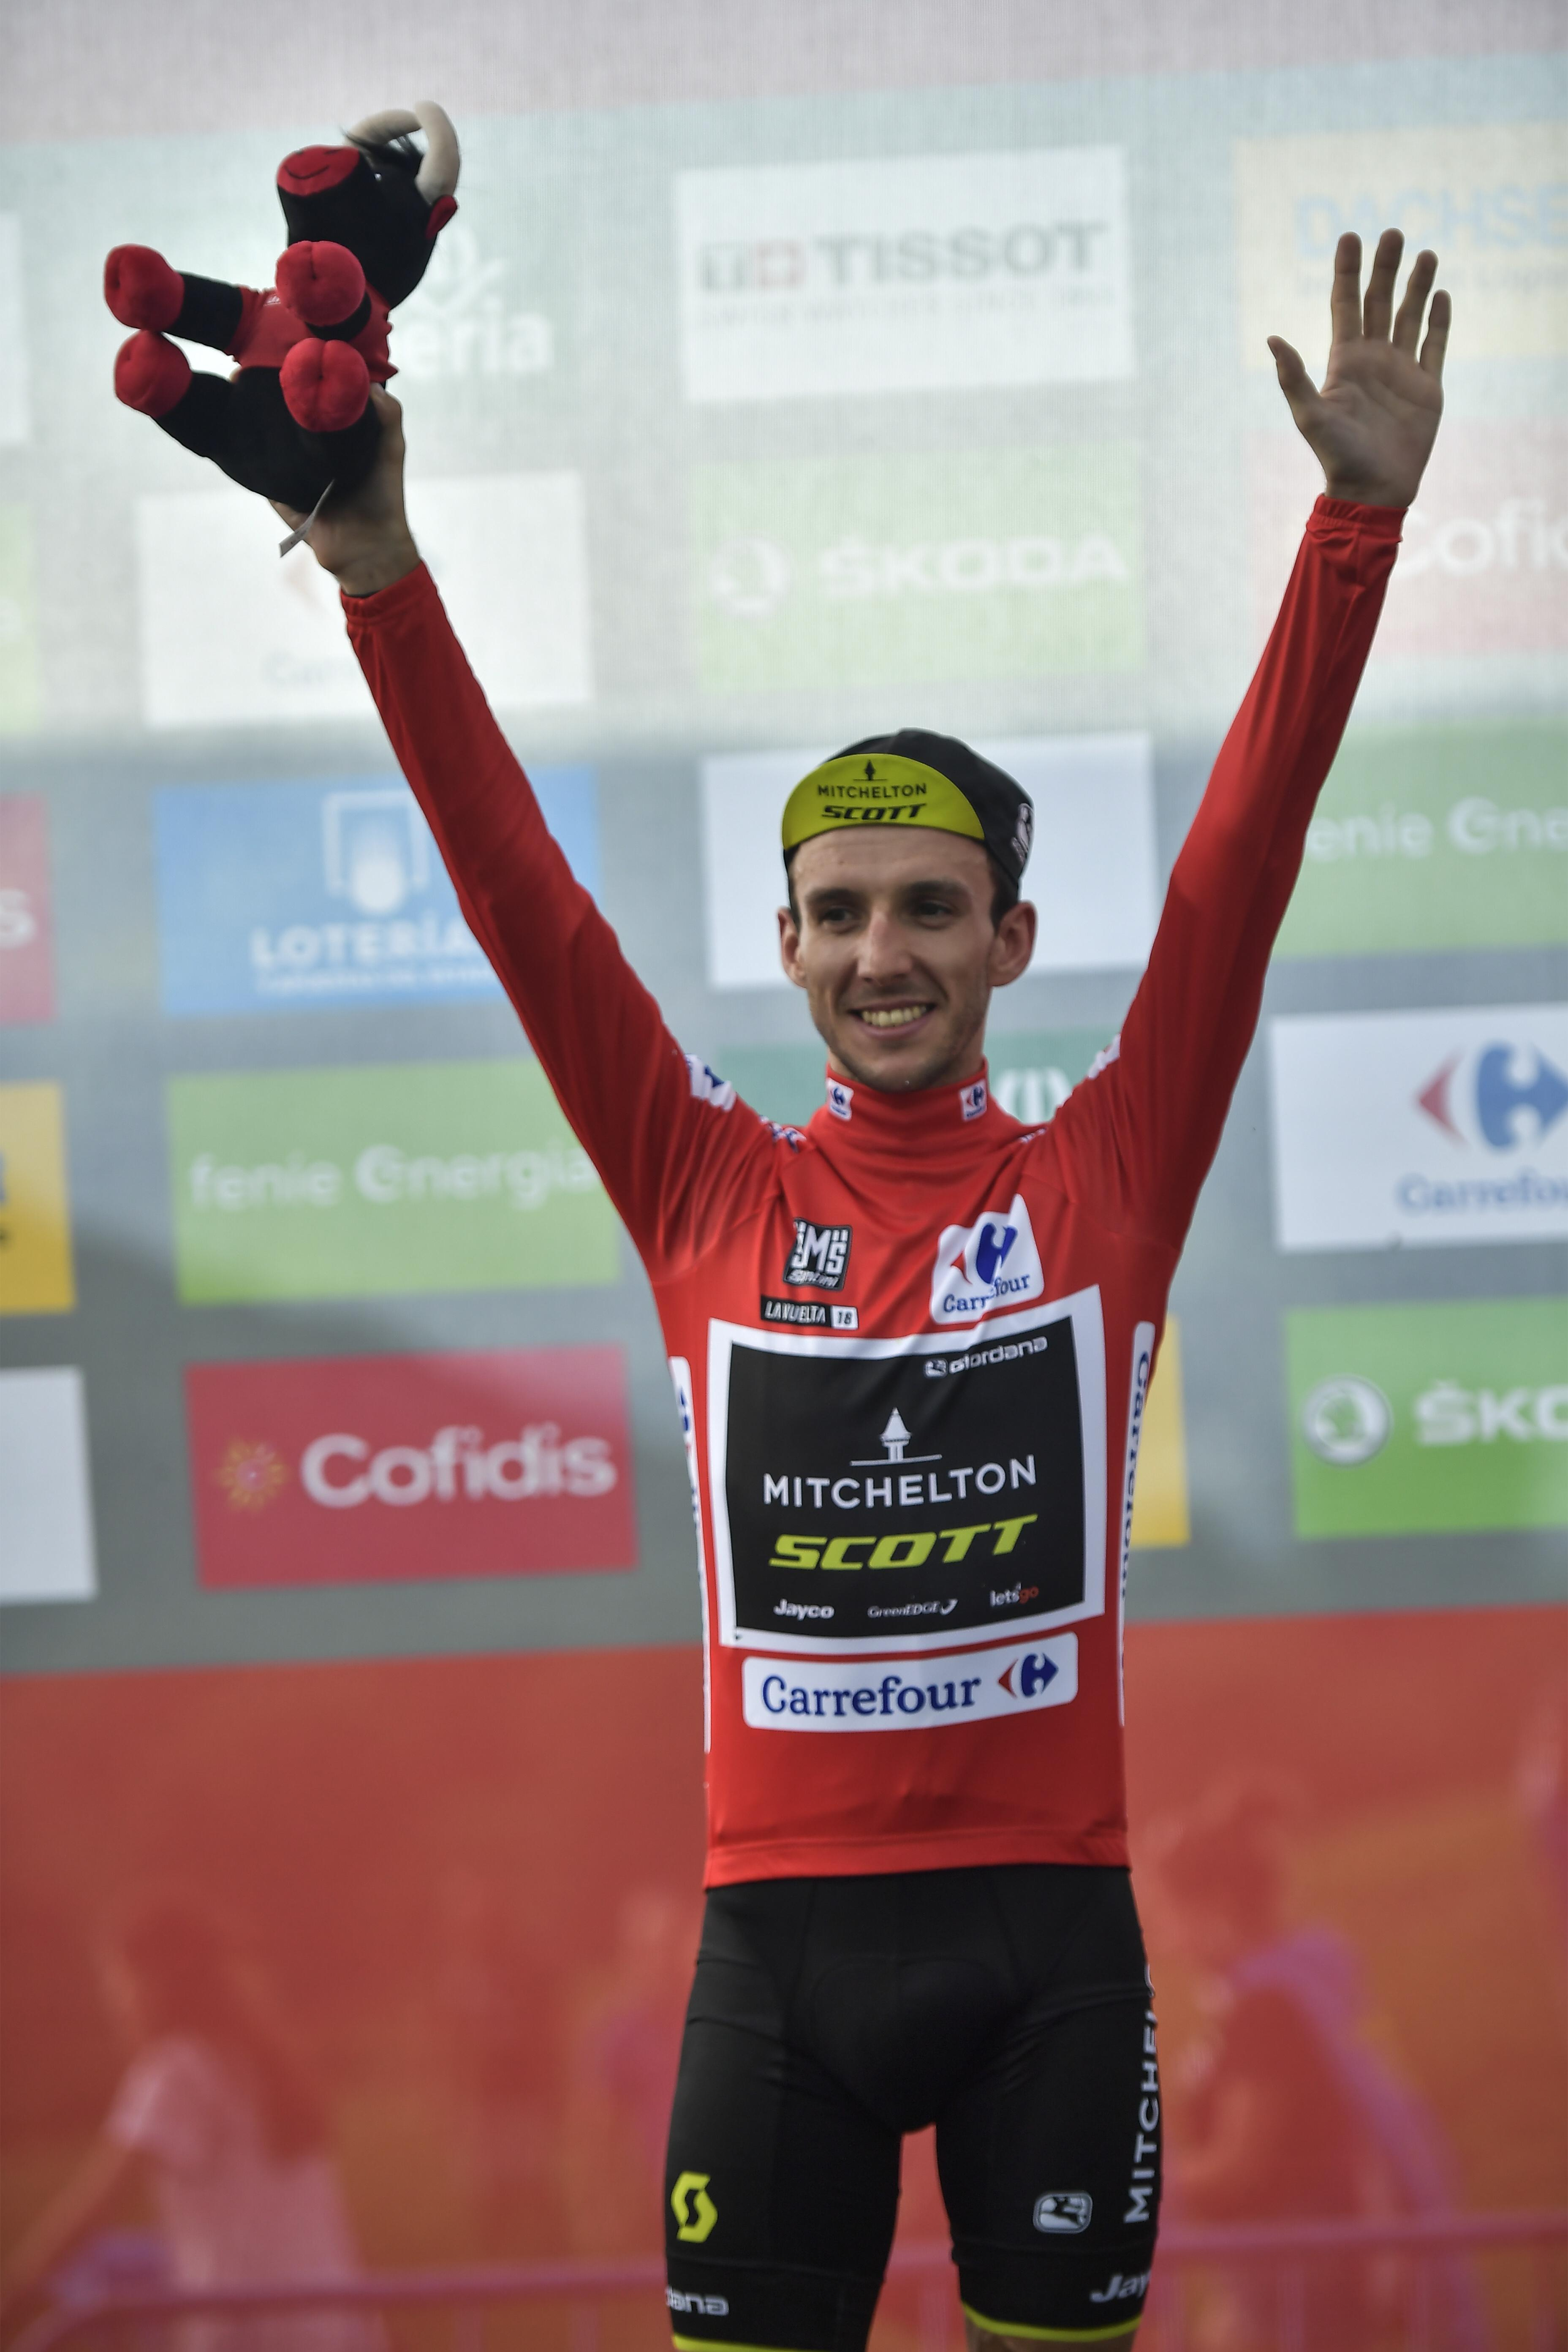 Simon Yates reclaimed the leader's jersey at the Vuelta a Espana